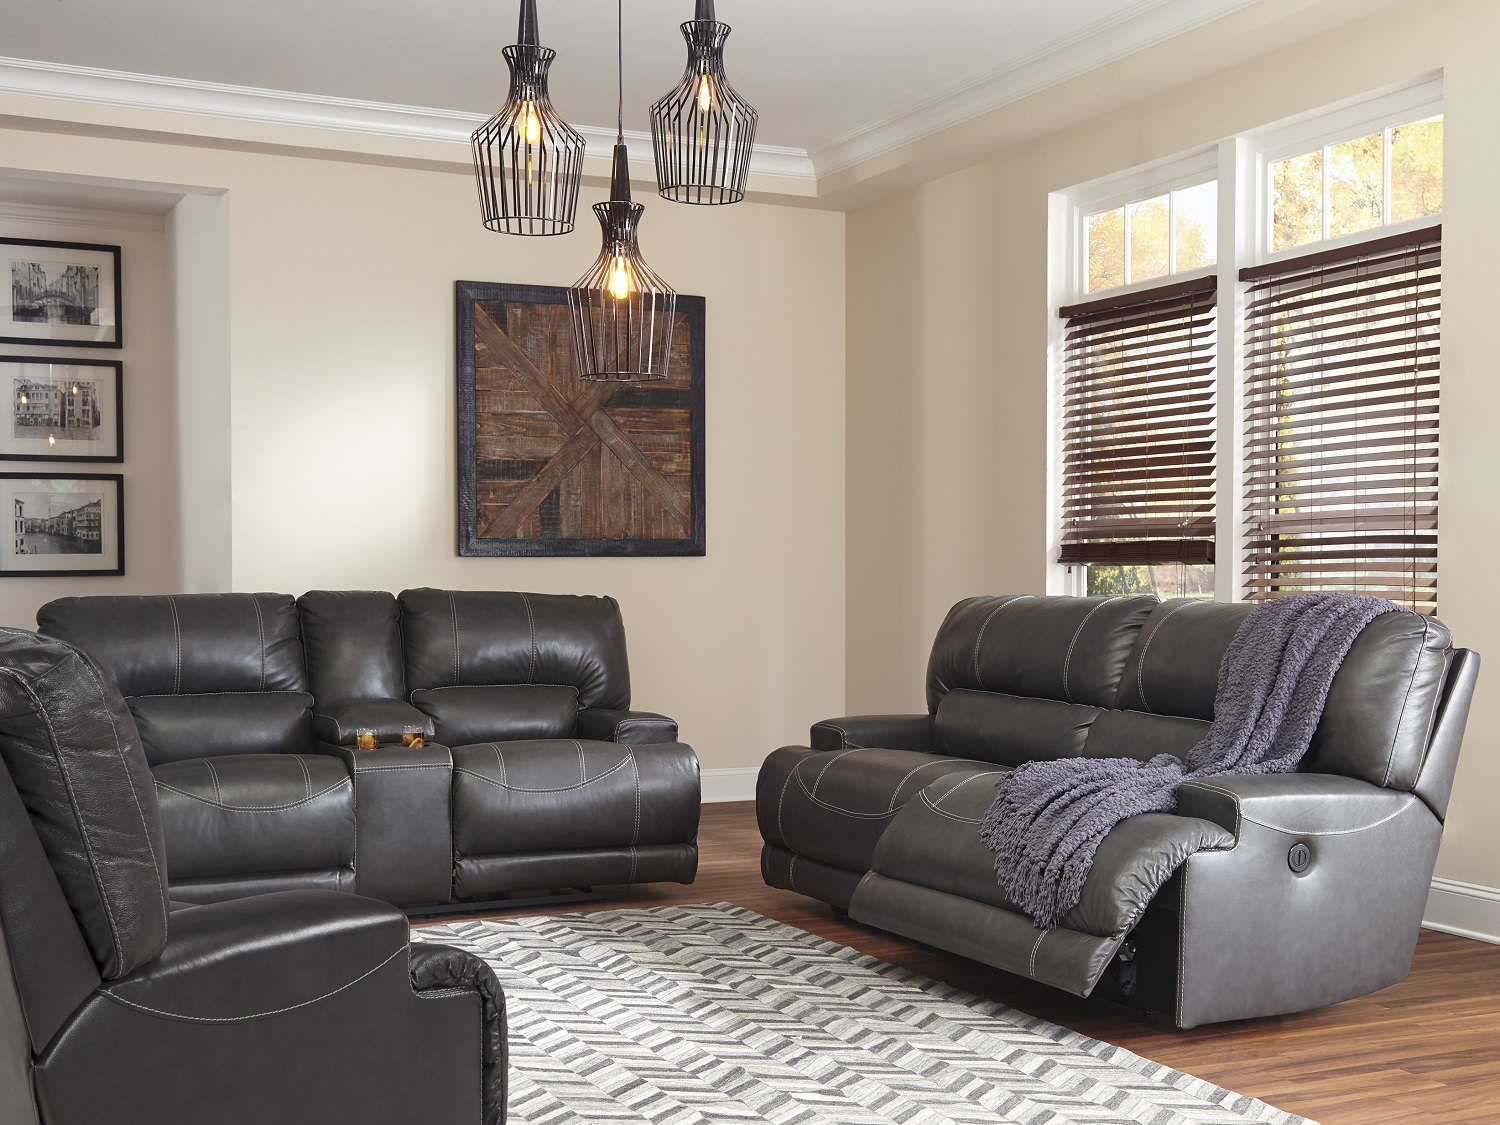 Maccaskil, U609, Recliners by Midha Furniture to Brampton, Mississauga, Etobicoke, Toronto, Scraborough, Caledon, Oakville, Markham, Ajax, Pickering, Oshawa, Richmondhill, Kitchener, Hamilton and GTA area